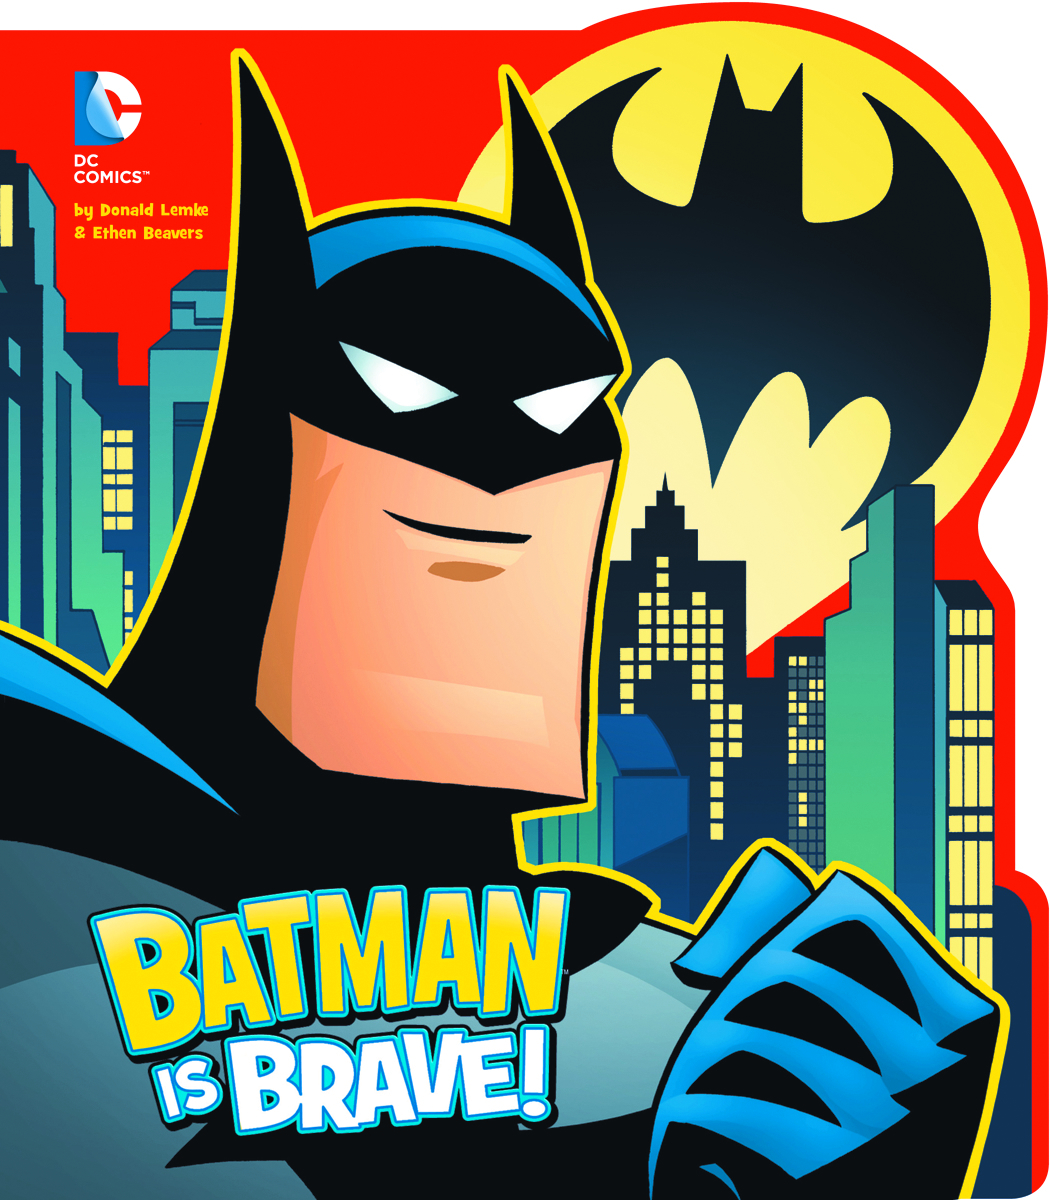 DC YR BOARD BOOK BATMAN IS BRAVE